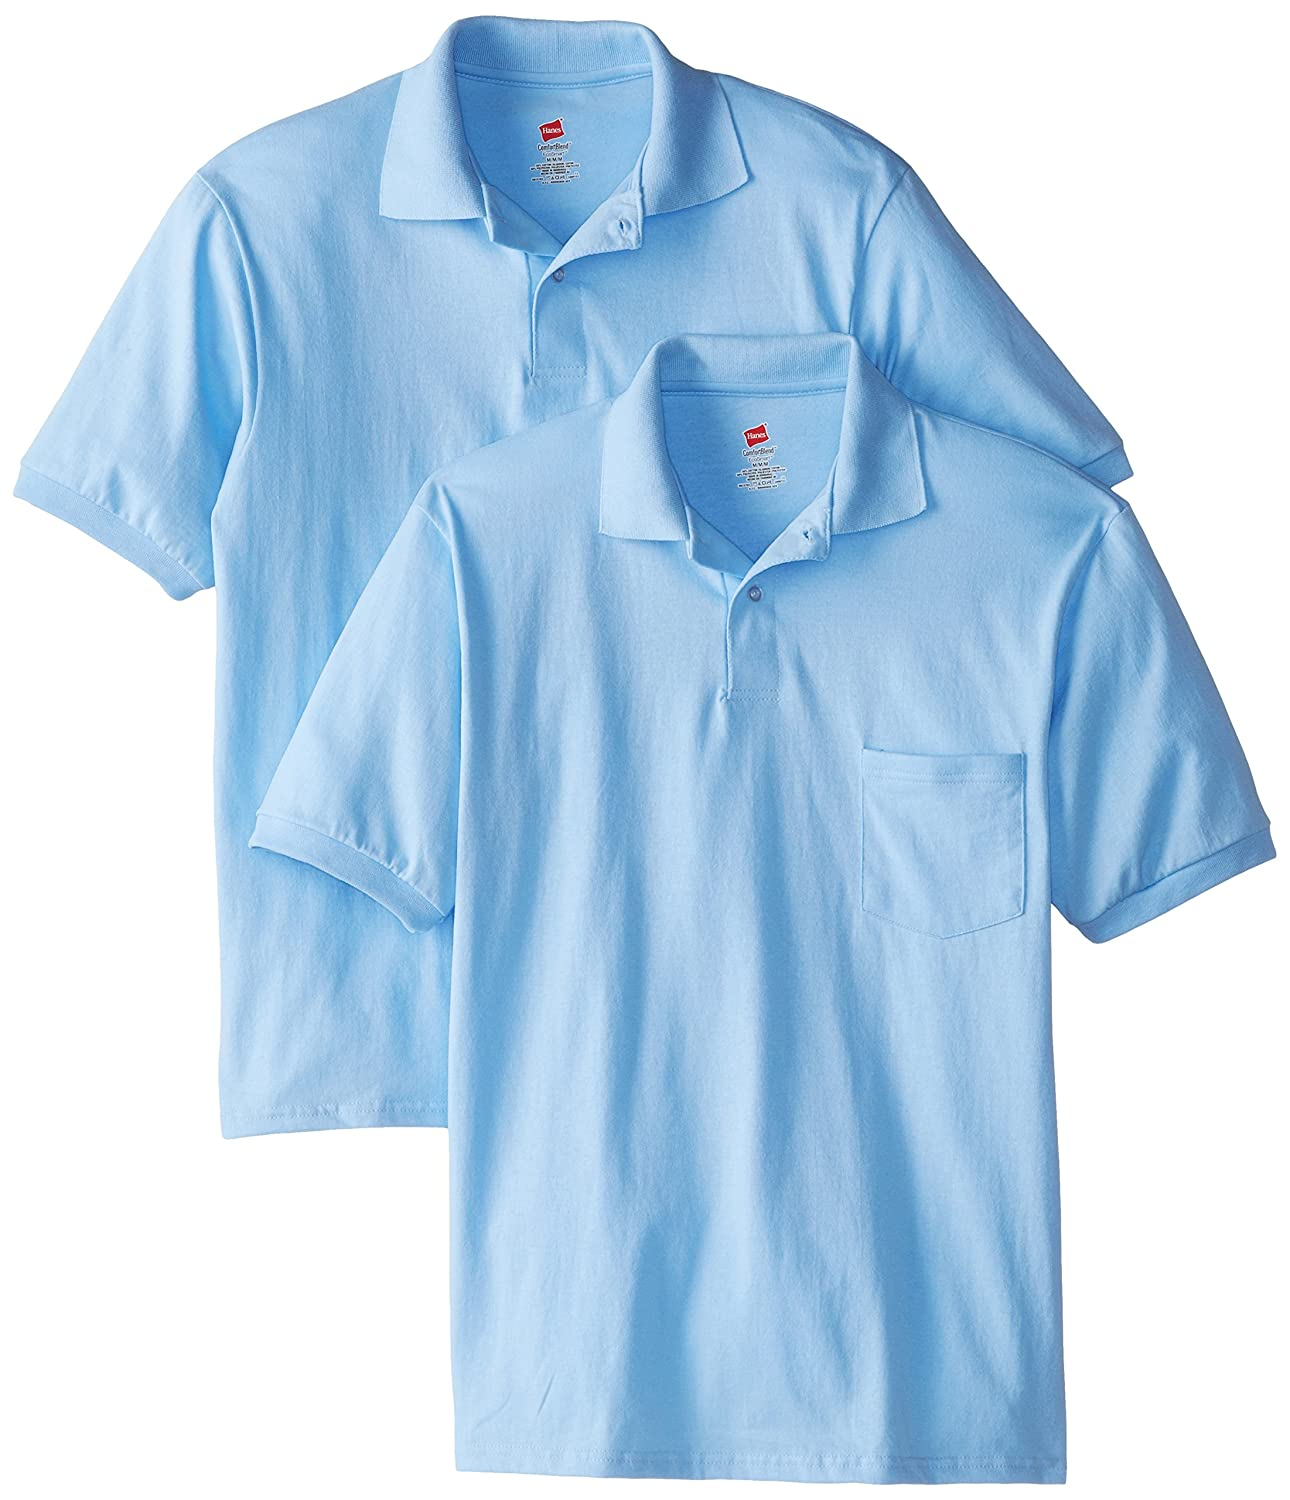 Hanes Men's Short-Sleeve Jersey Pocket Polo (Pack of 2) O0504